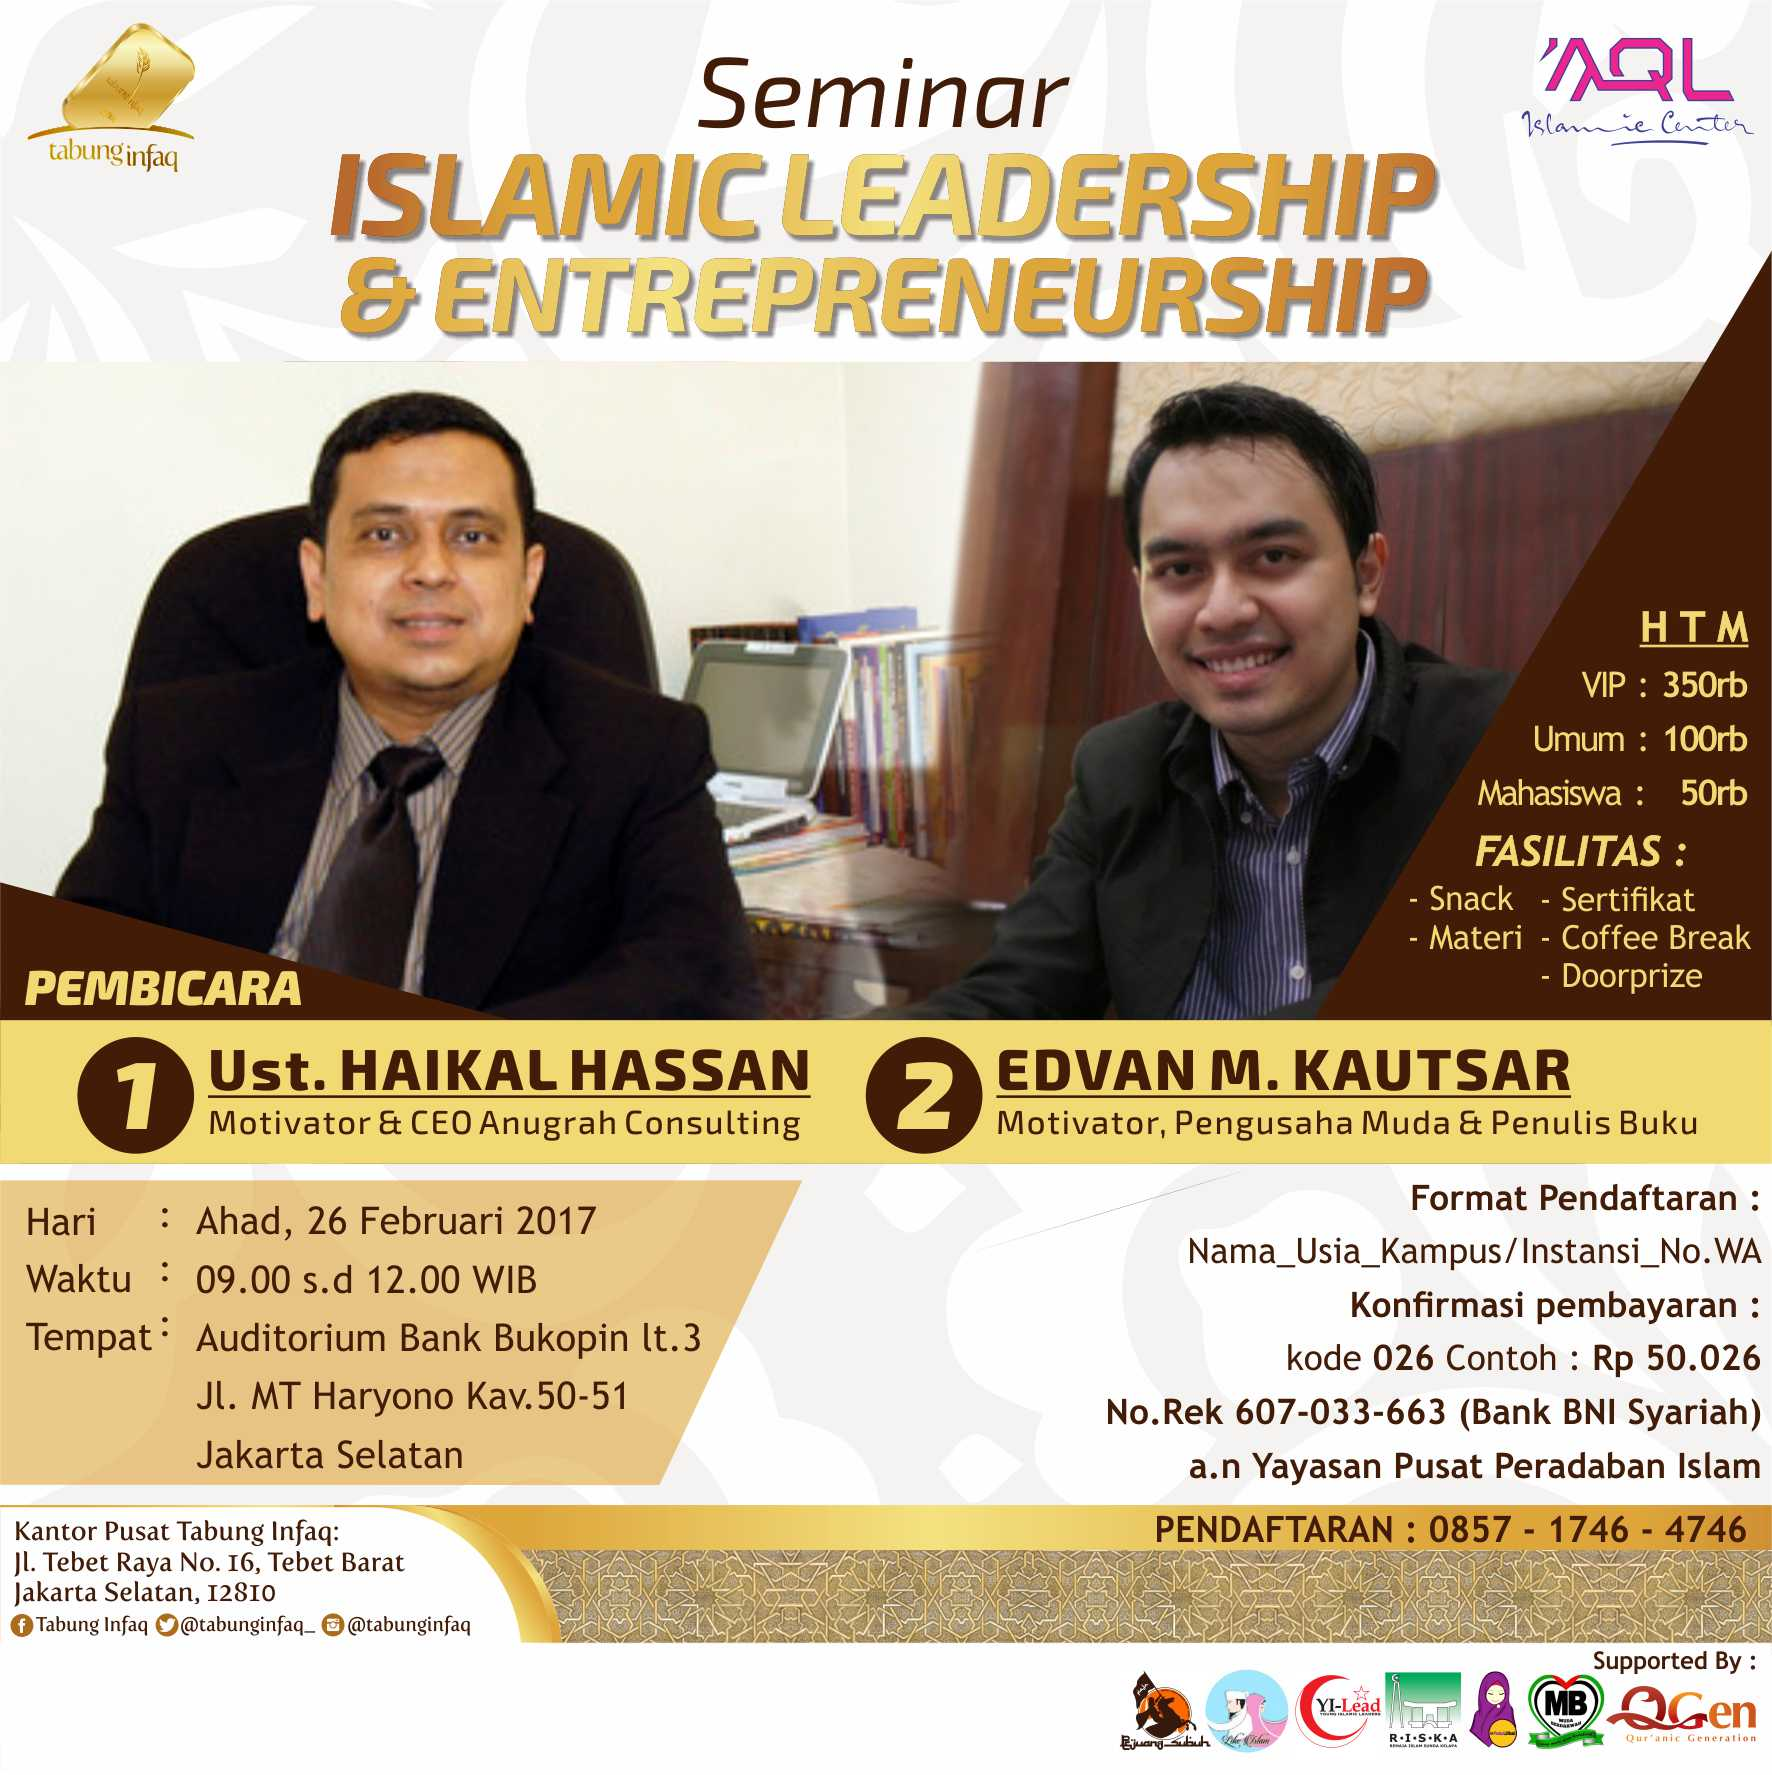 Seminar Islamic Leadership & Entrepreneur - Auditorium Bank Bukopin Jakarta, 26 Februari 2017